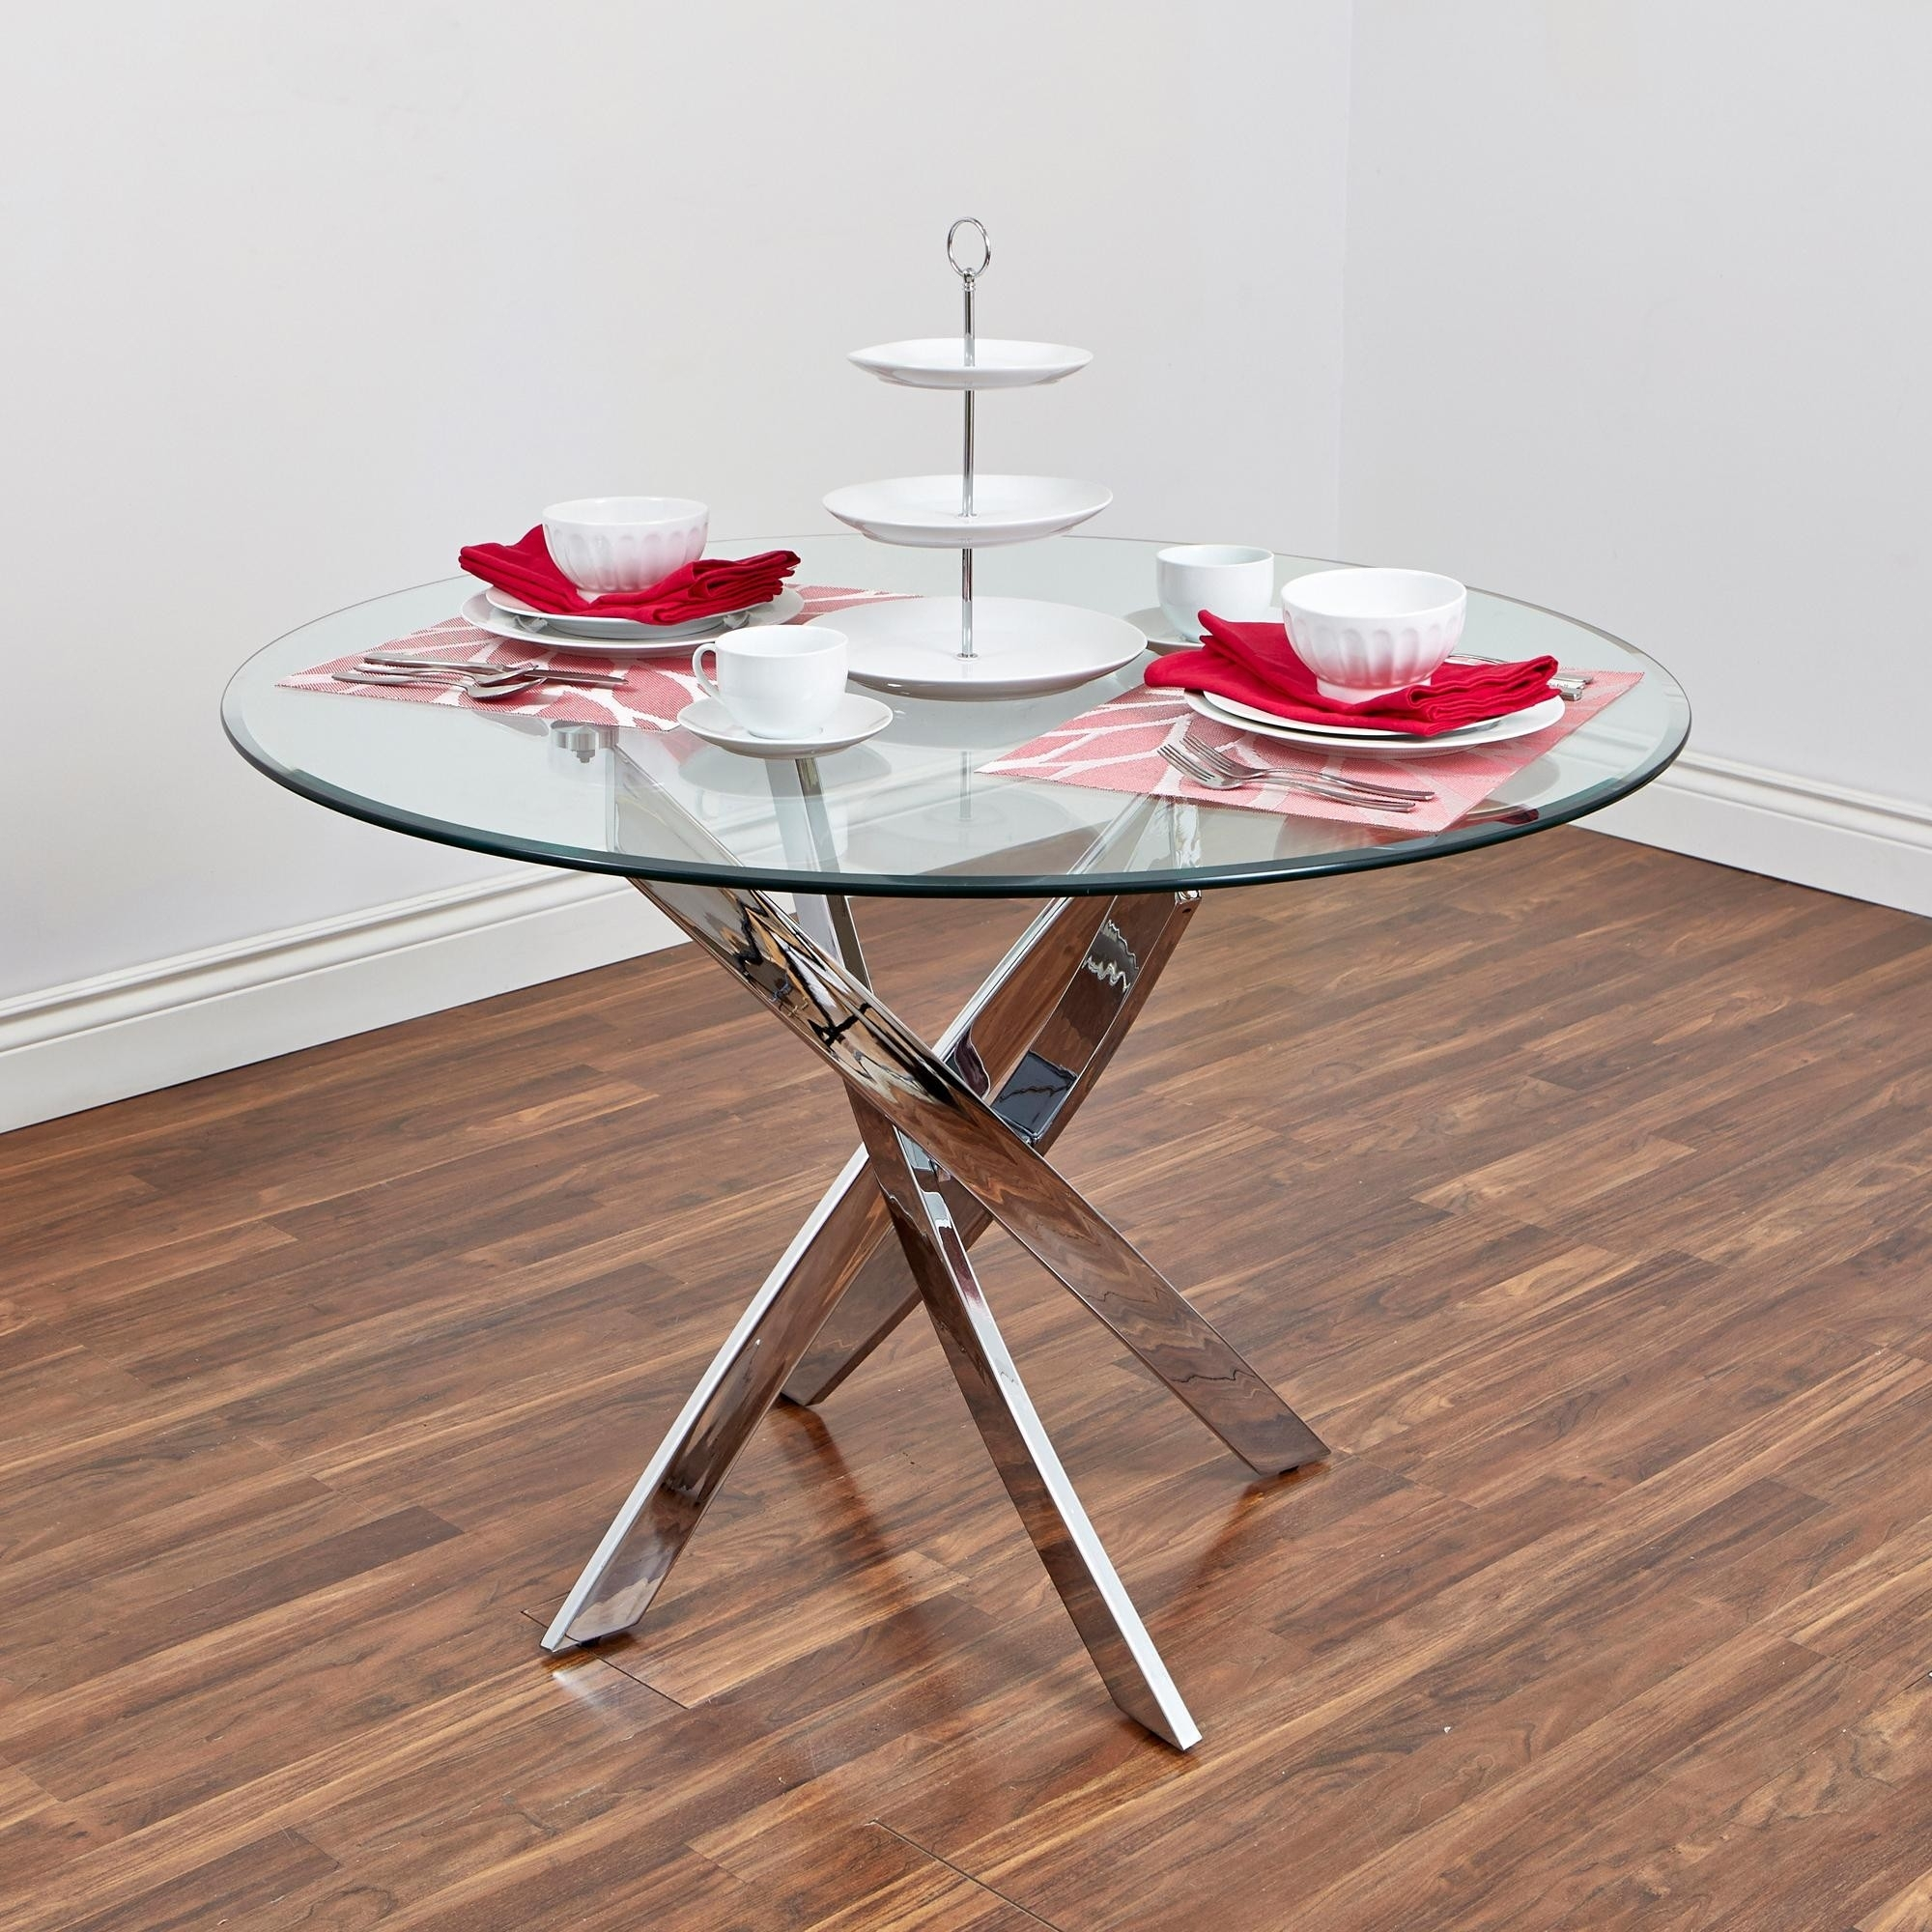 Bradford Carol Glass Dining Table (Clear/silver) | Kitchen Stuff Plus Regarding Most Current Bradford Dining Tables (View 14 of 20)